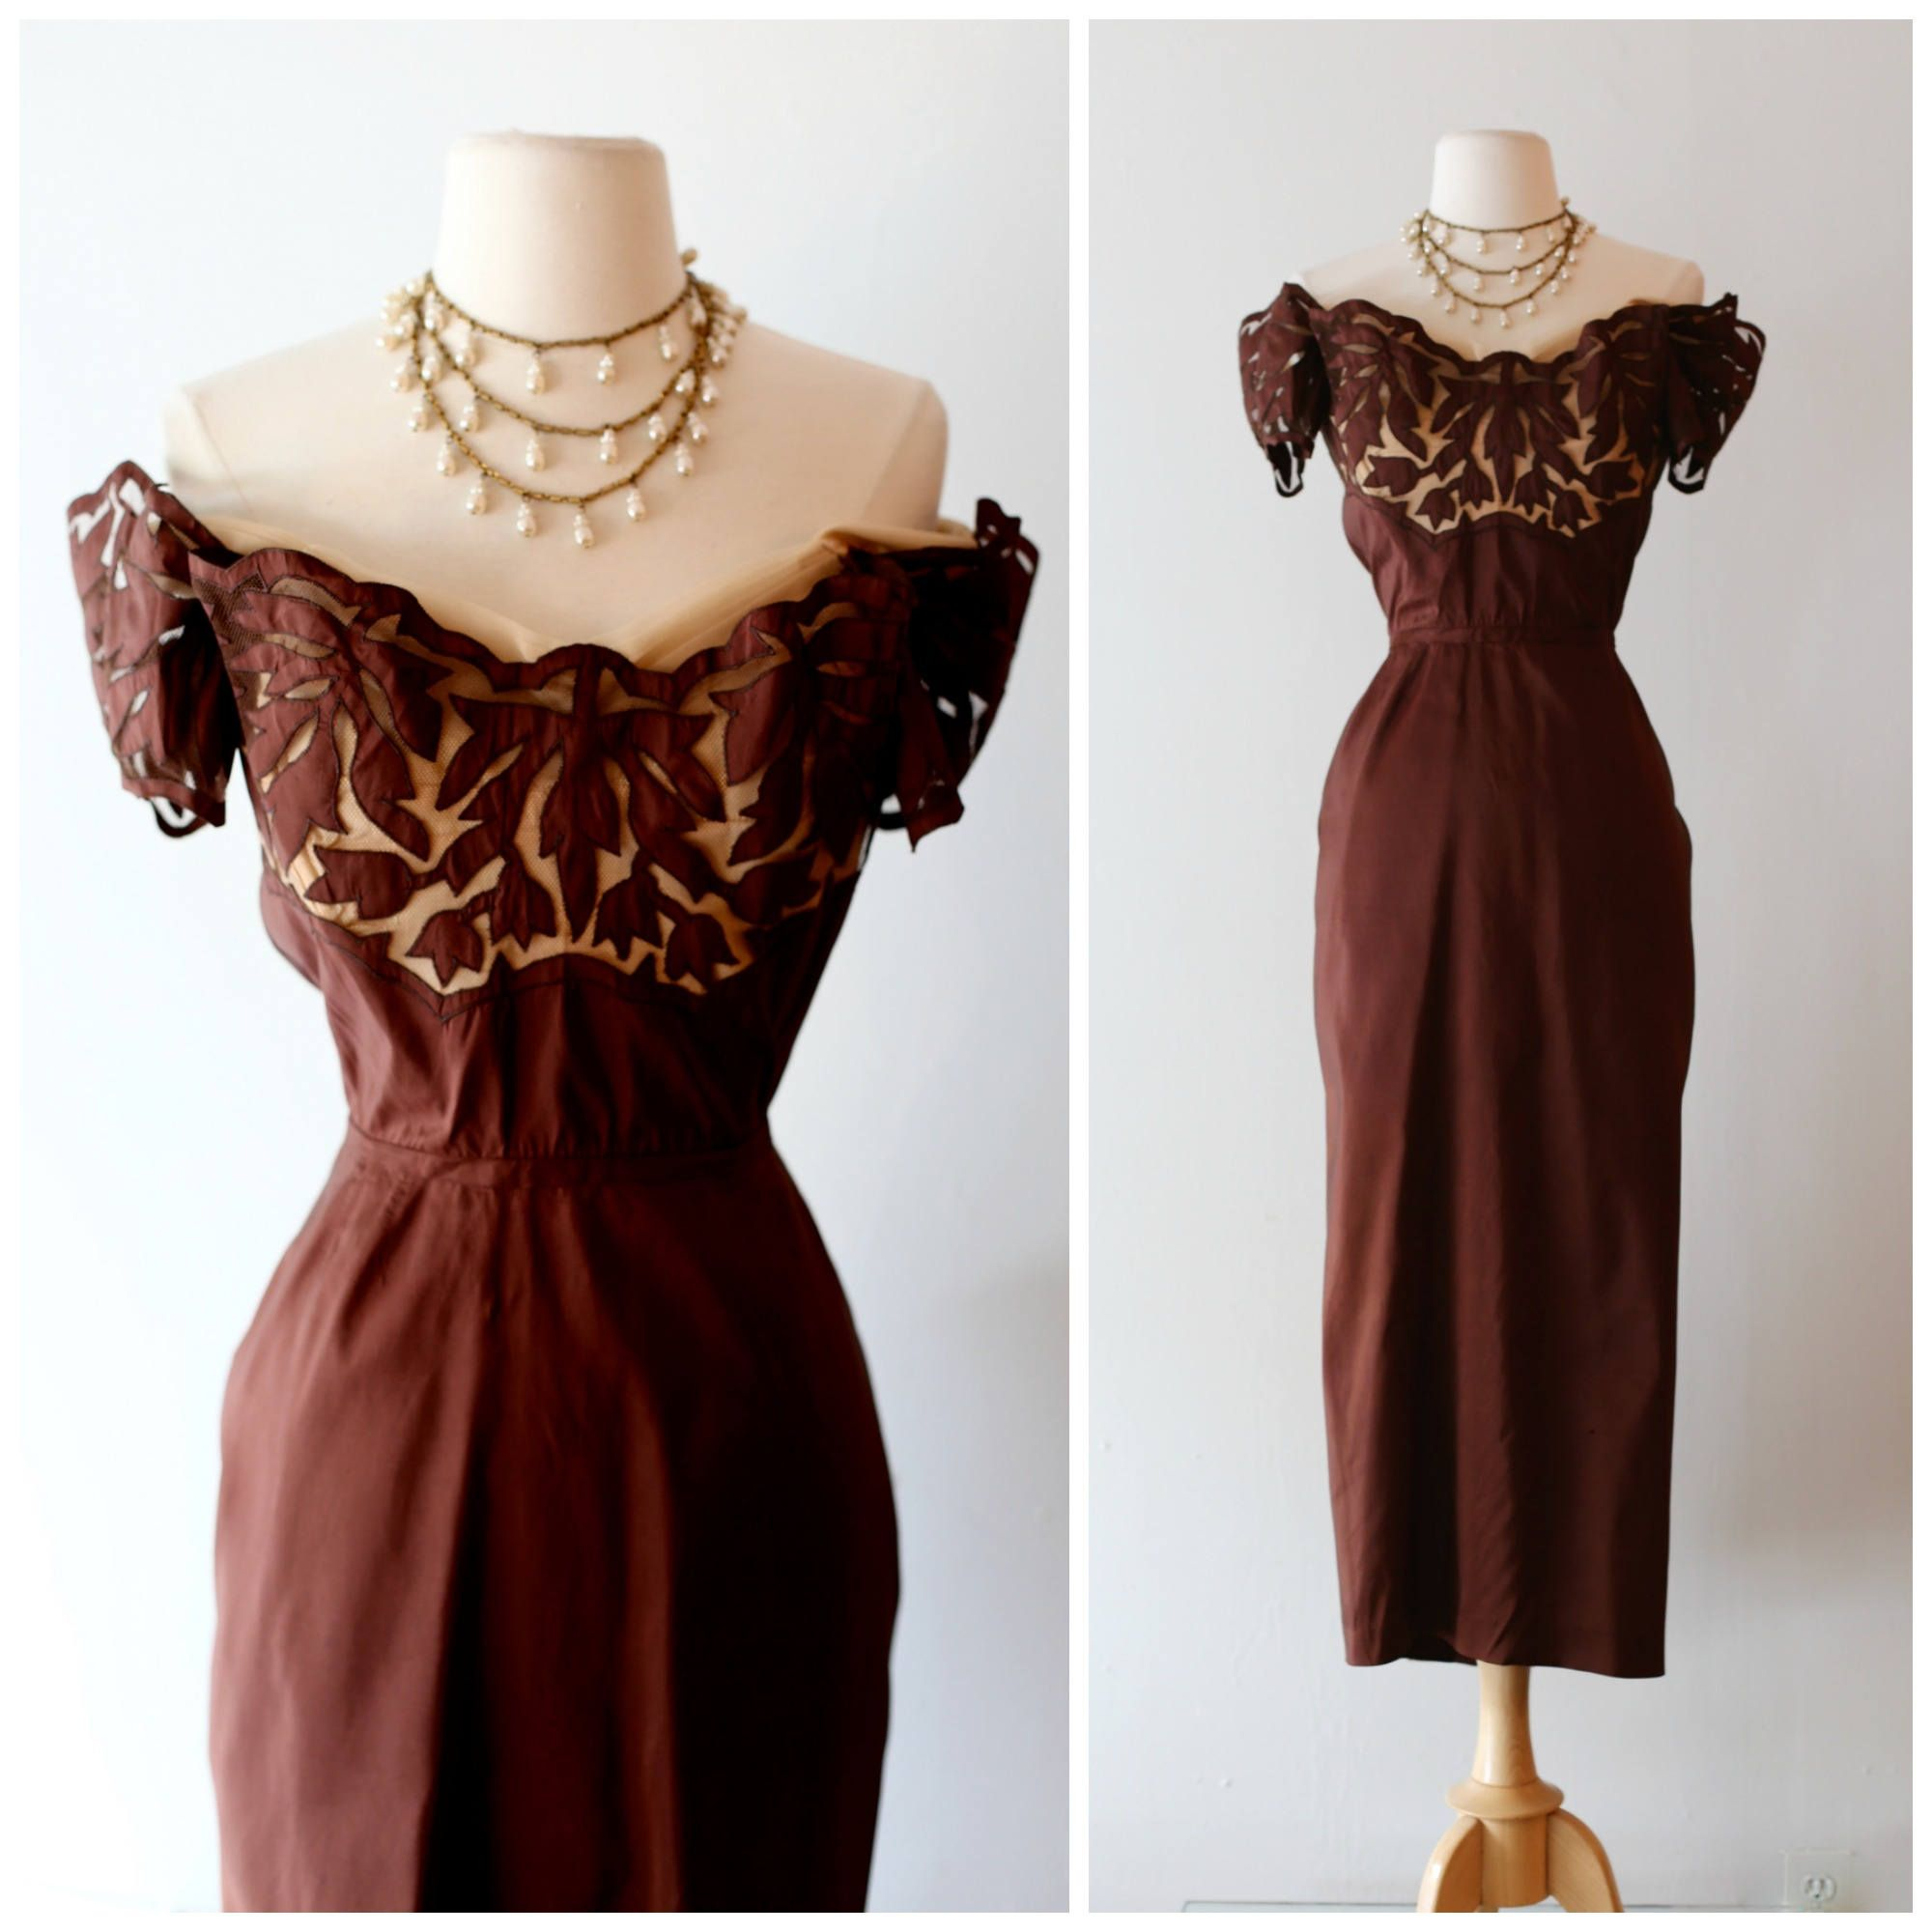 dfb7a92117d6 Vintage 1940 s Chocolate Silk Taffeta Cocktail Dress With Illusion Bodice ~  Vintage 40s Femme Fatale Off The Shoulder Party Dress by xtabayvintage on  Etsy